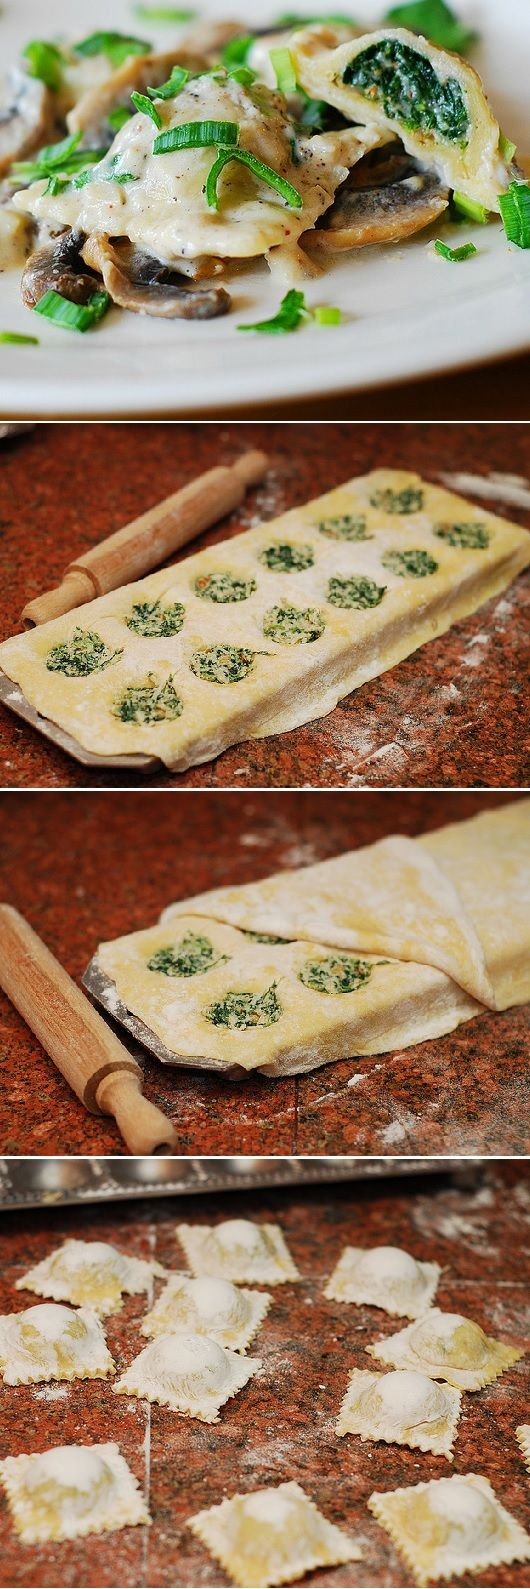 Ravioli with goat cheese and spinach filling in Parmesan cream sauce. Homemade from scratch, using a handy ravioli mold: detailed photo tutorial. | JuliasAlbum.com | #pasta